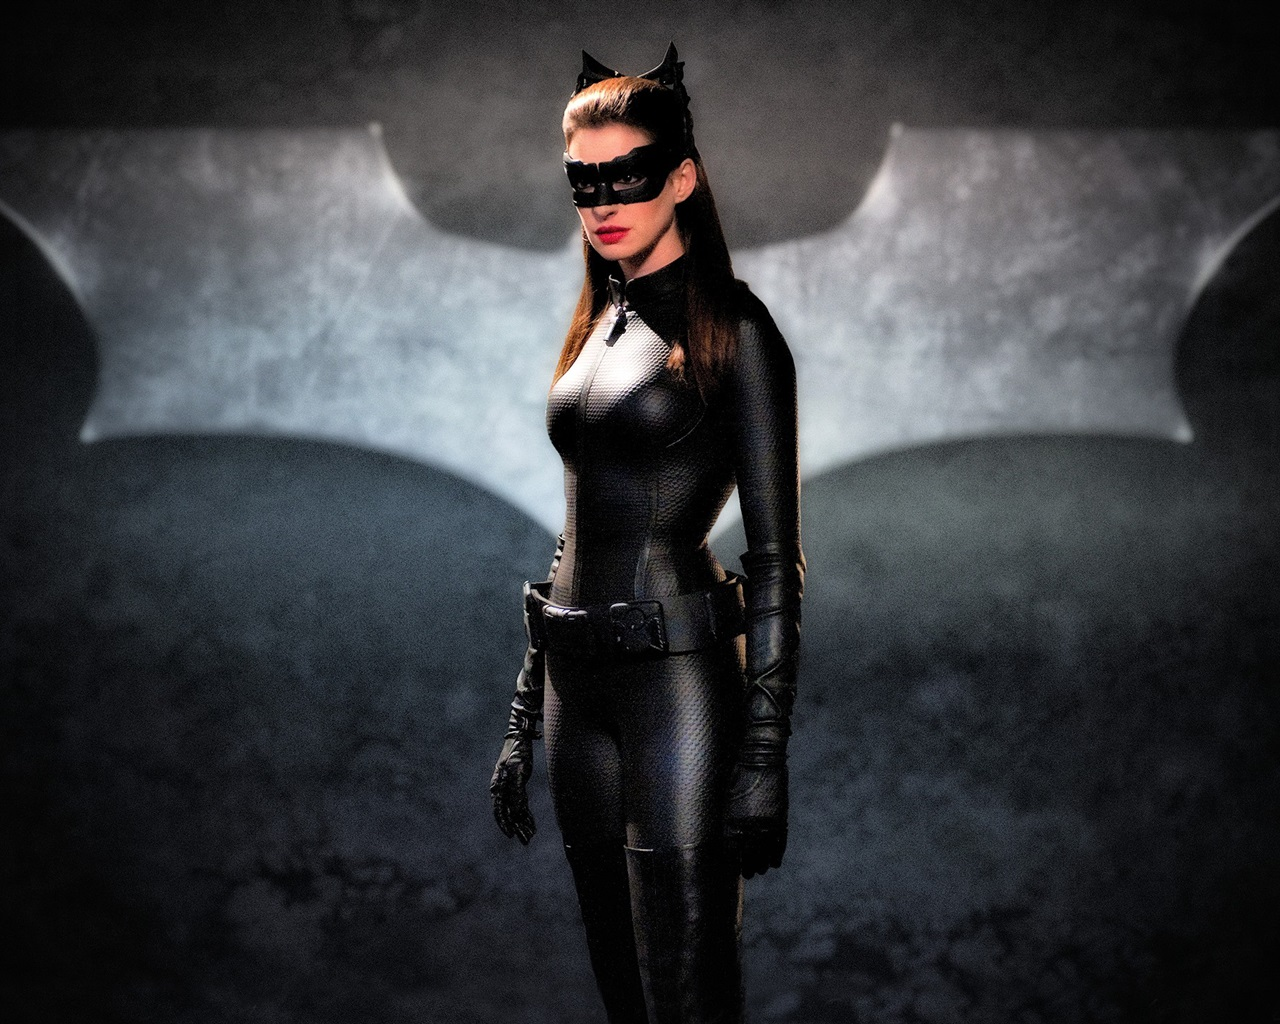 Anne hathaway as catwoman great ass - 1 part 4